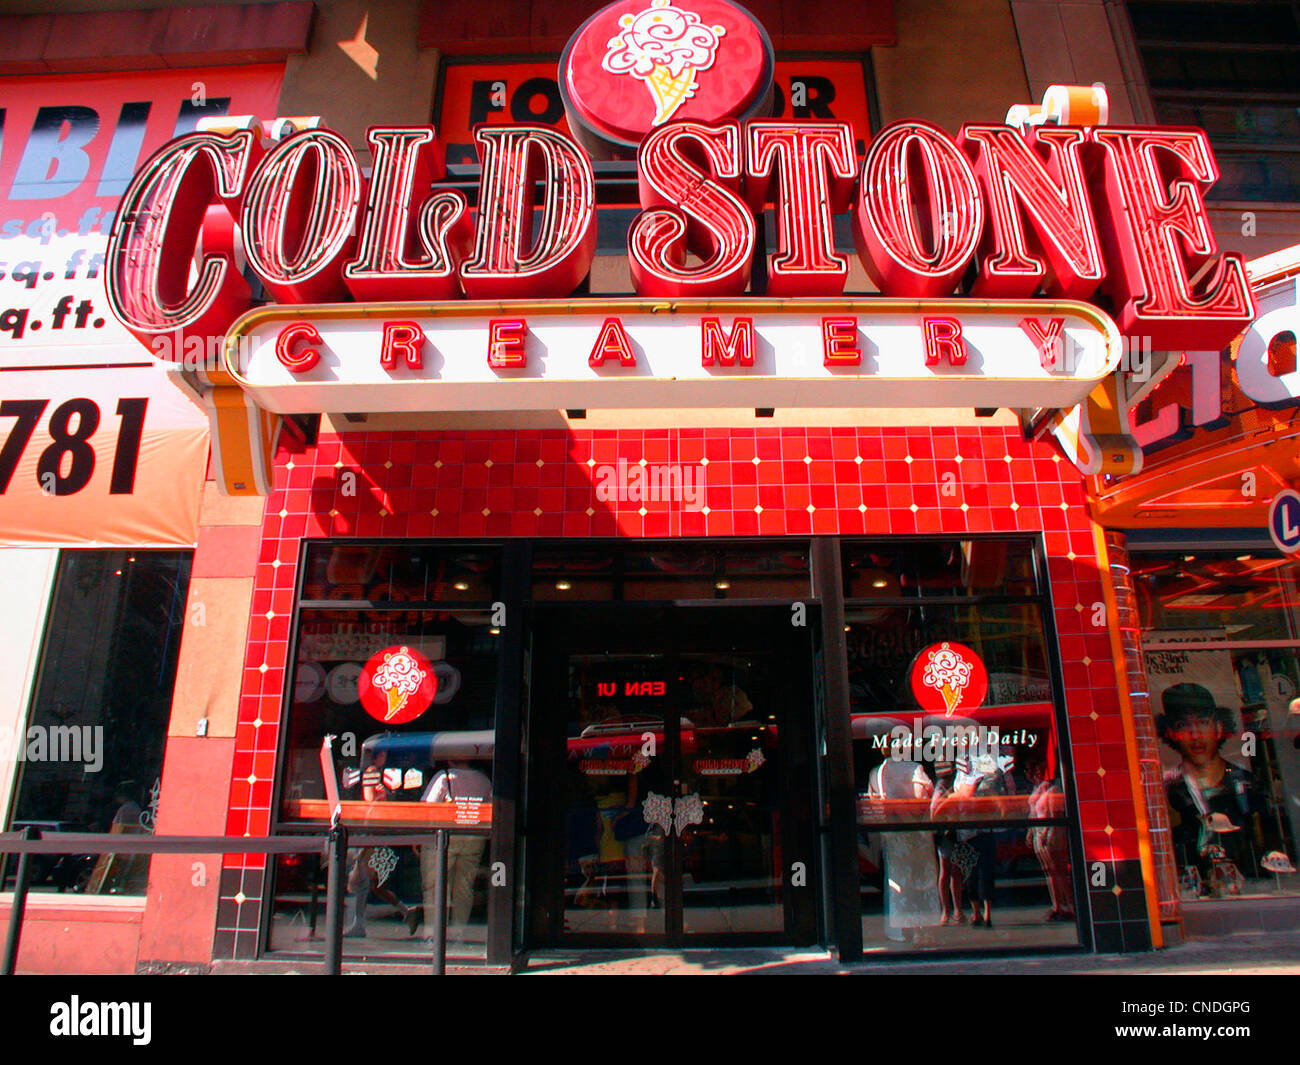 Cold Stone Creamery New York NY locations, hours, phone number, map and driving directions.